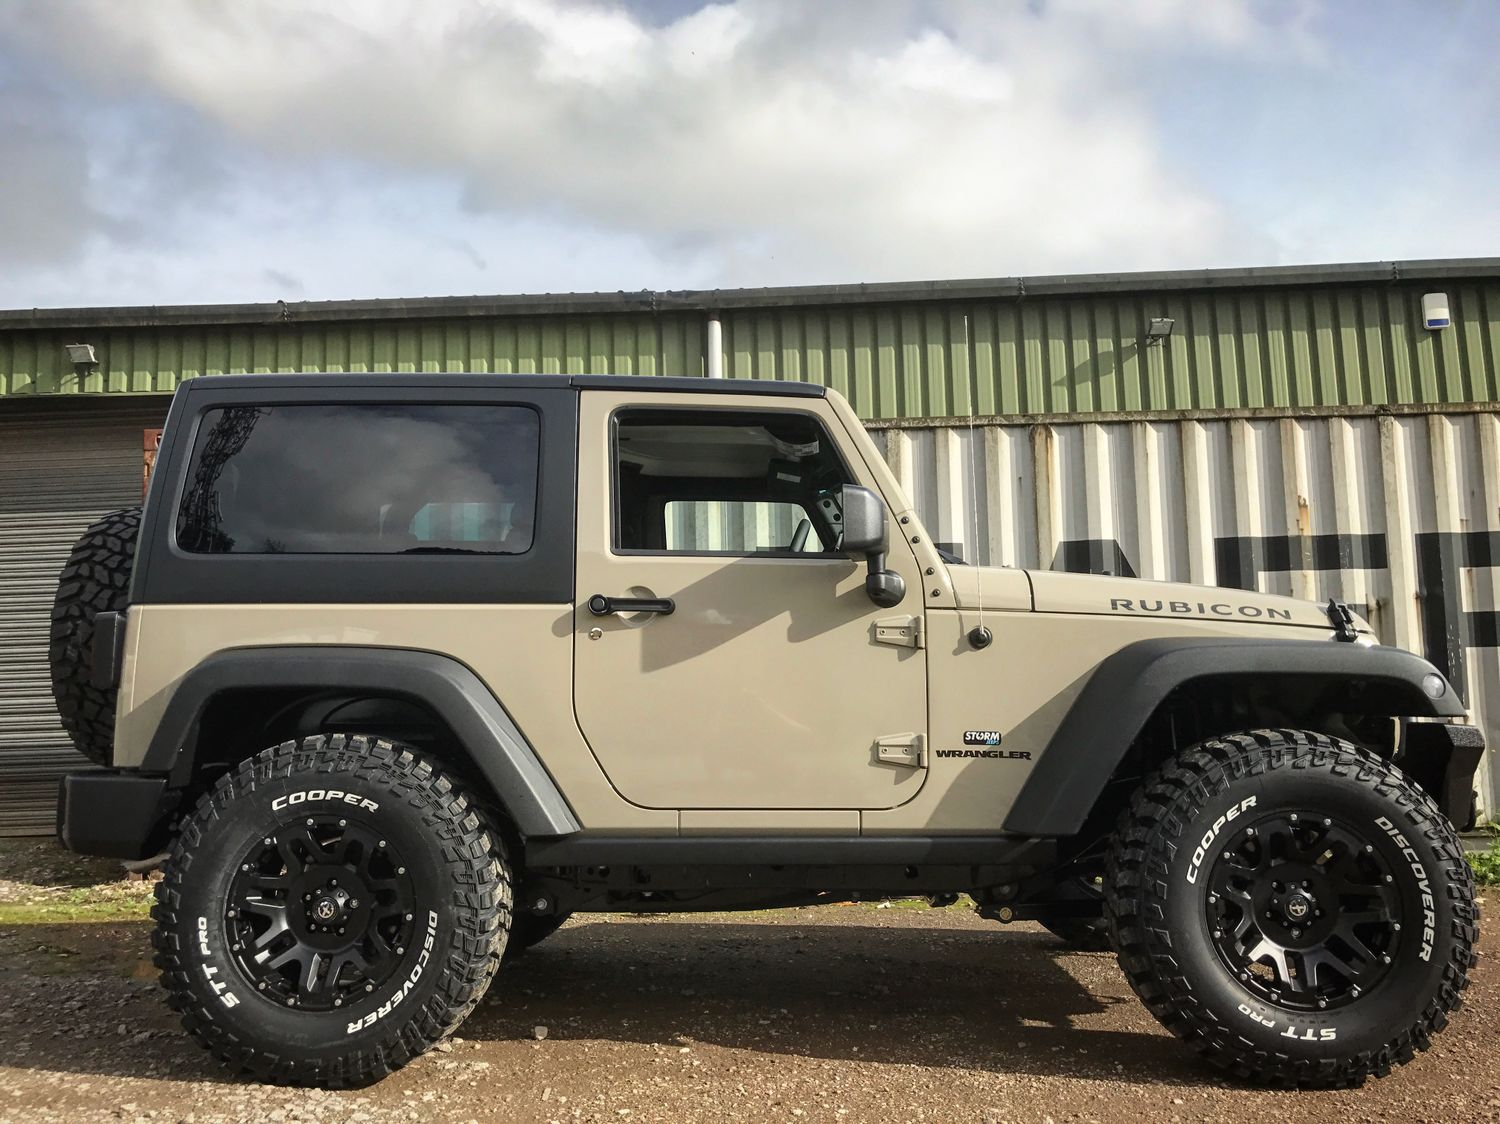 Storm 20 2017 Jeep Wrangler Rubicon 2 Door 3 6l V6